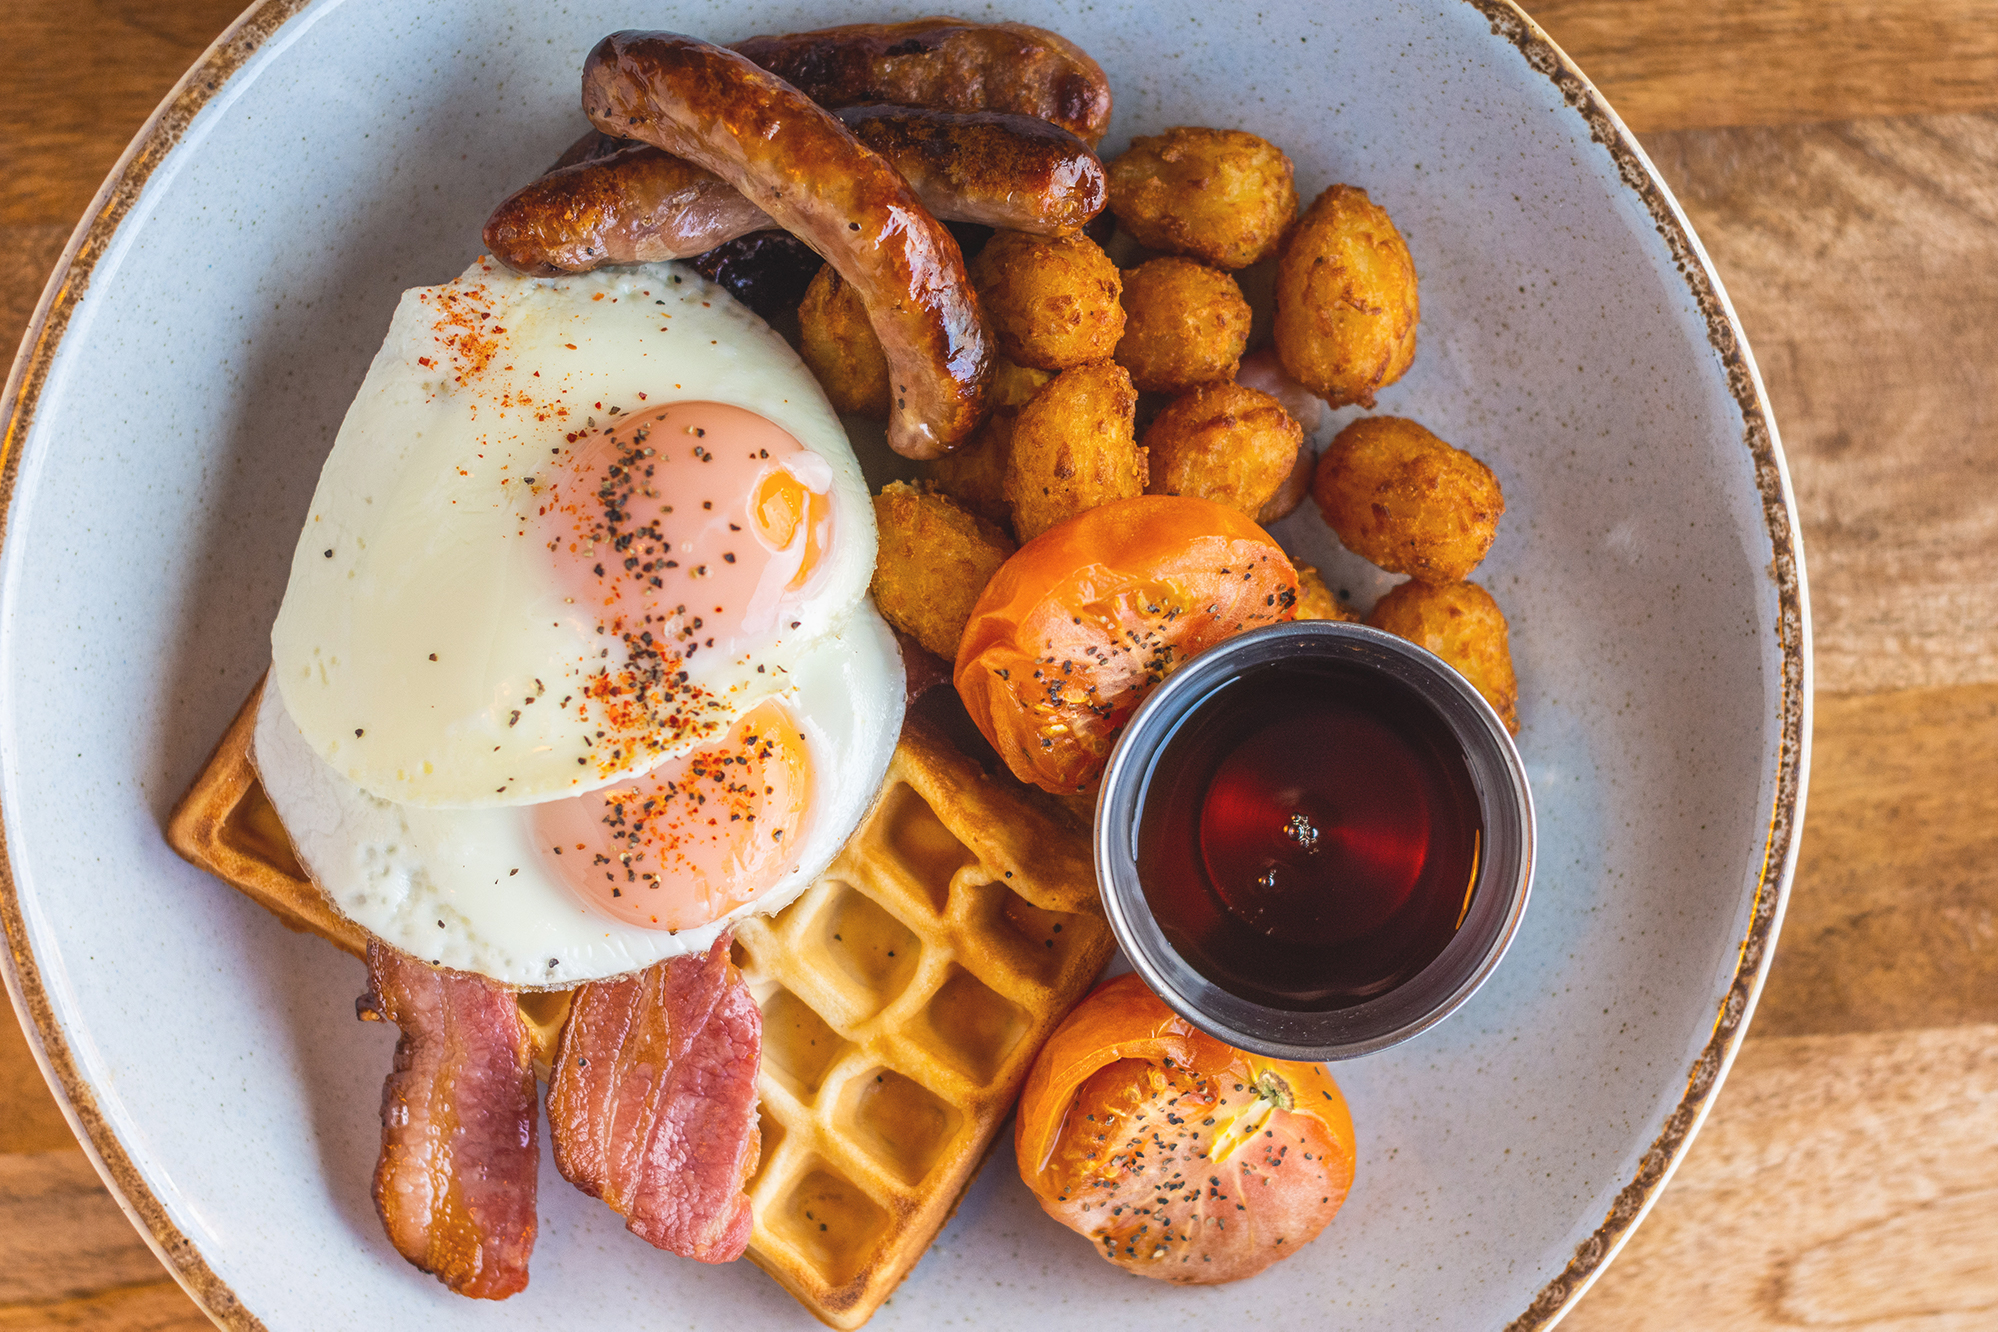 Breakfast and brunch -